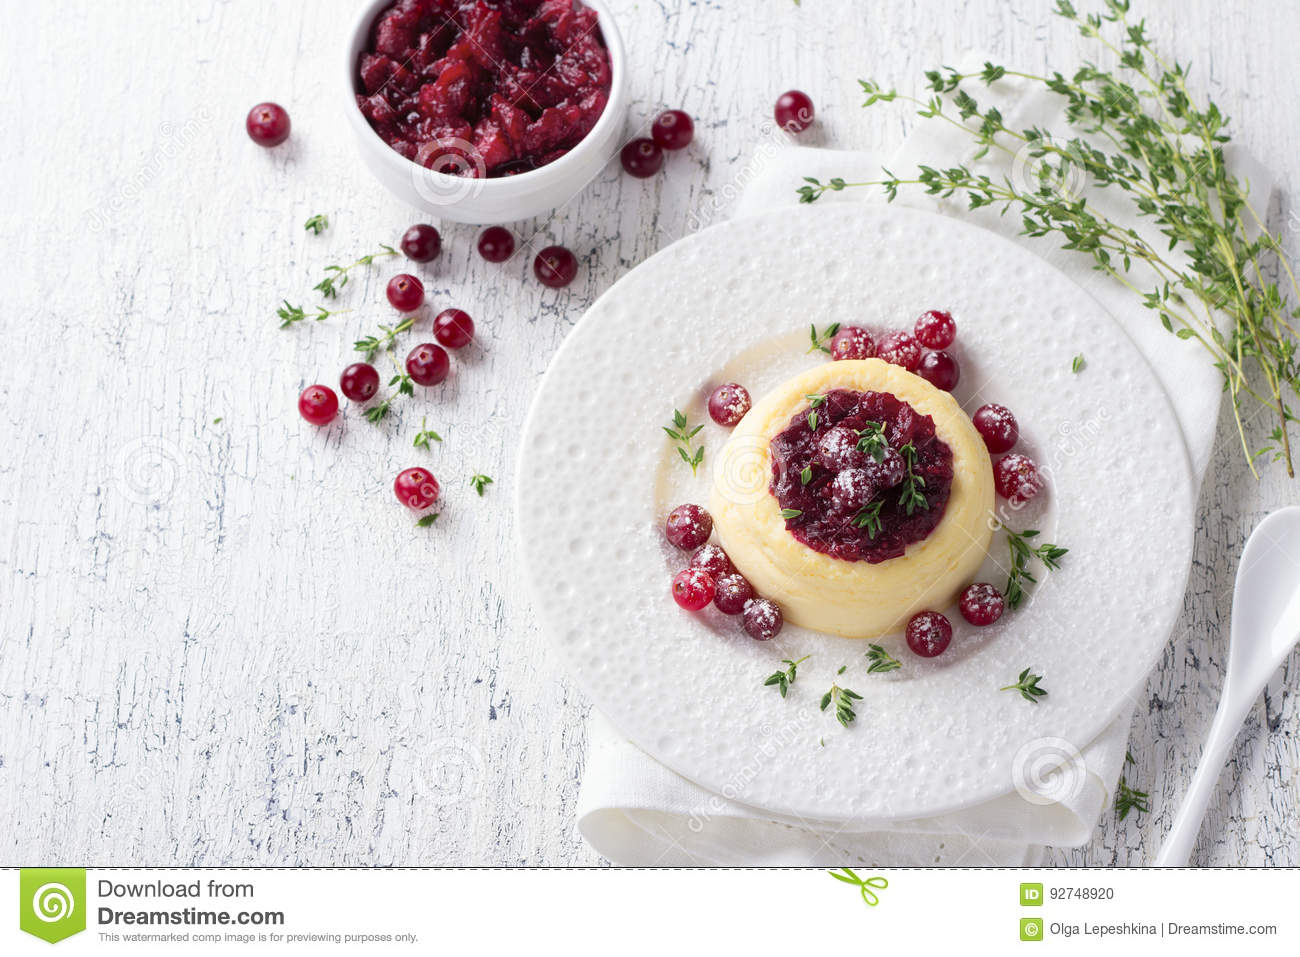 Phenomenal Cheesecake Cottage Cheese Pudding With Jam And Fresh Download Free Architecture Designs Intelgarnamadebymaigaardcom